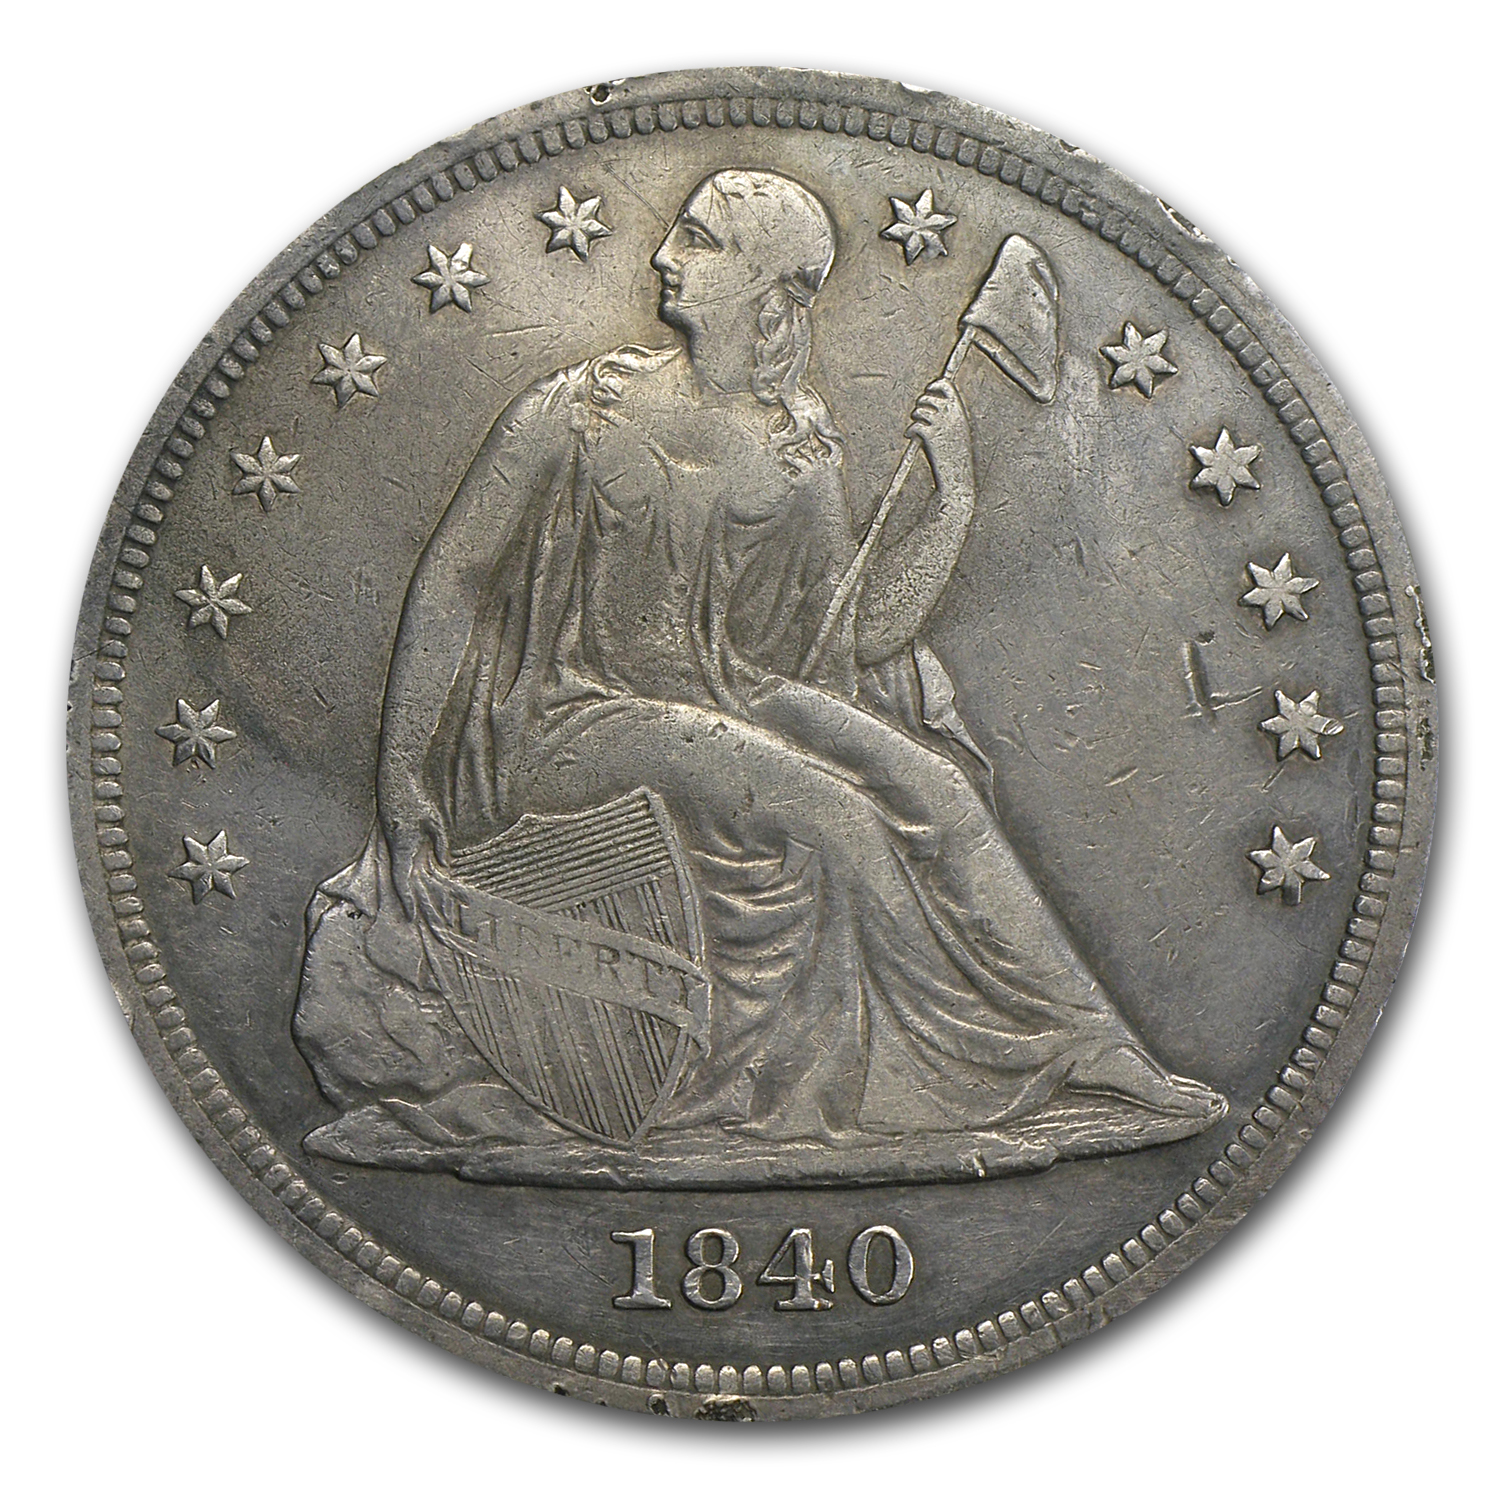 1840 Liberty Seated Dollar - Extra Fine